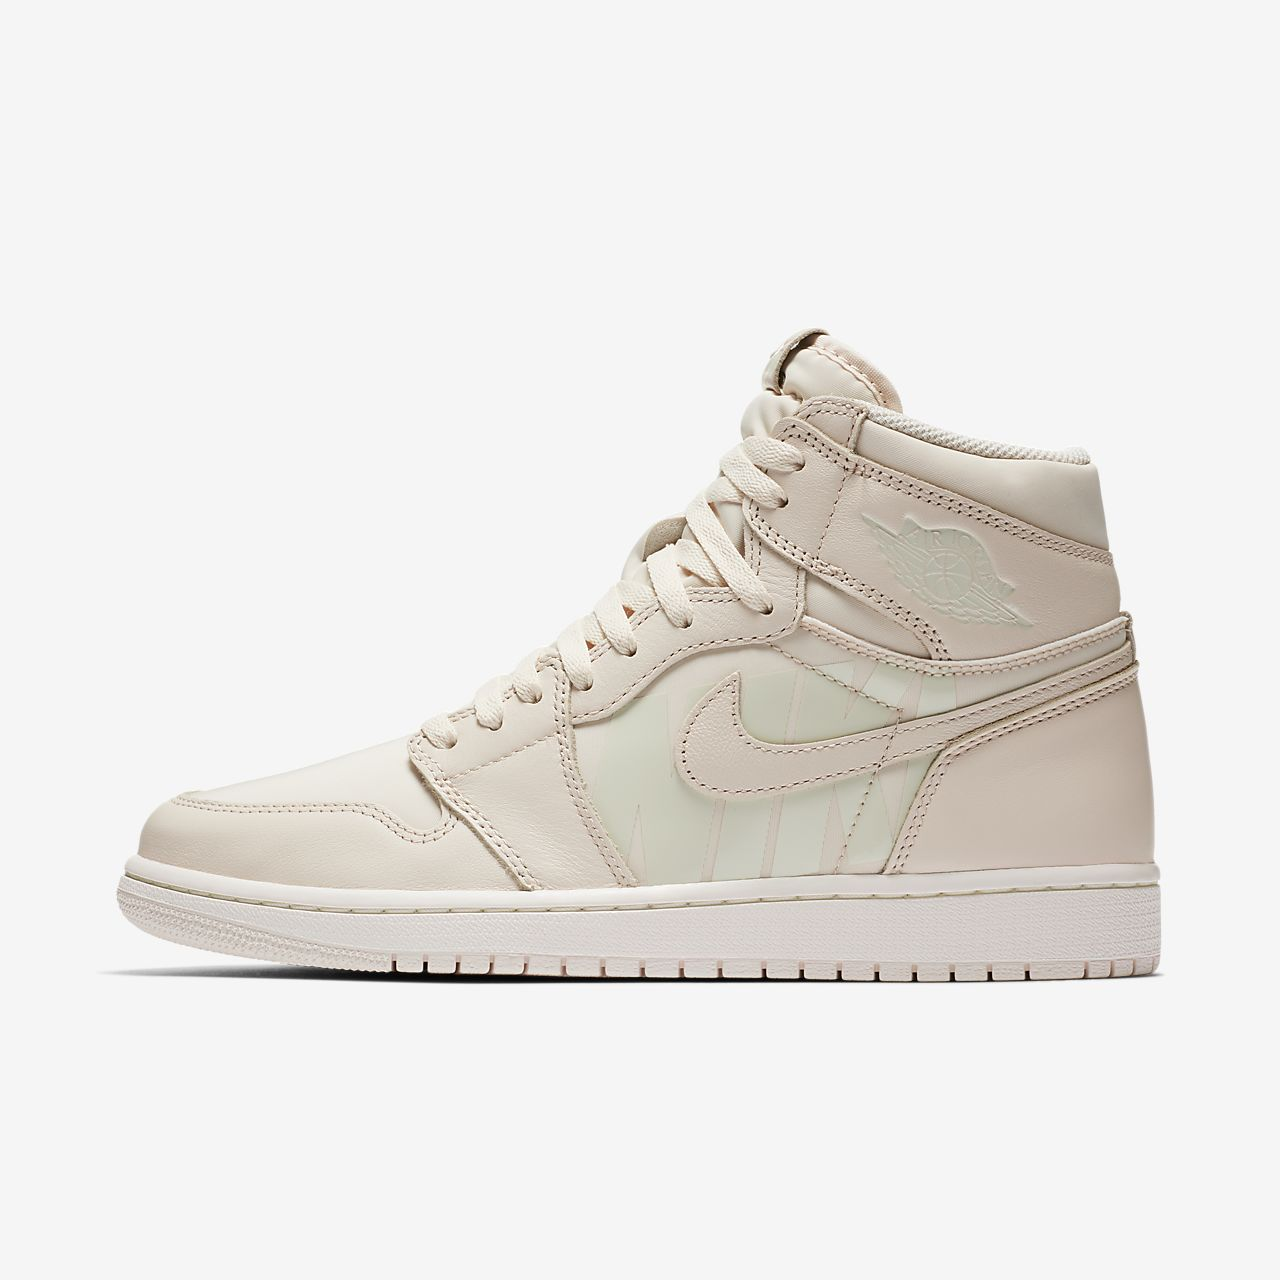 443c83c816df1e Air Jordan 1 Retro High OG Shoe. Nike.com